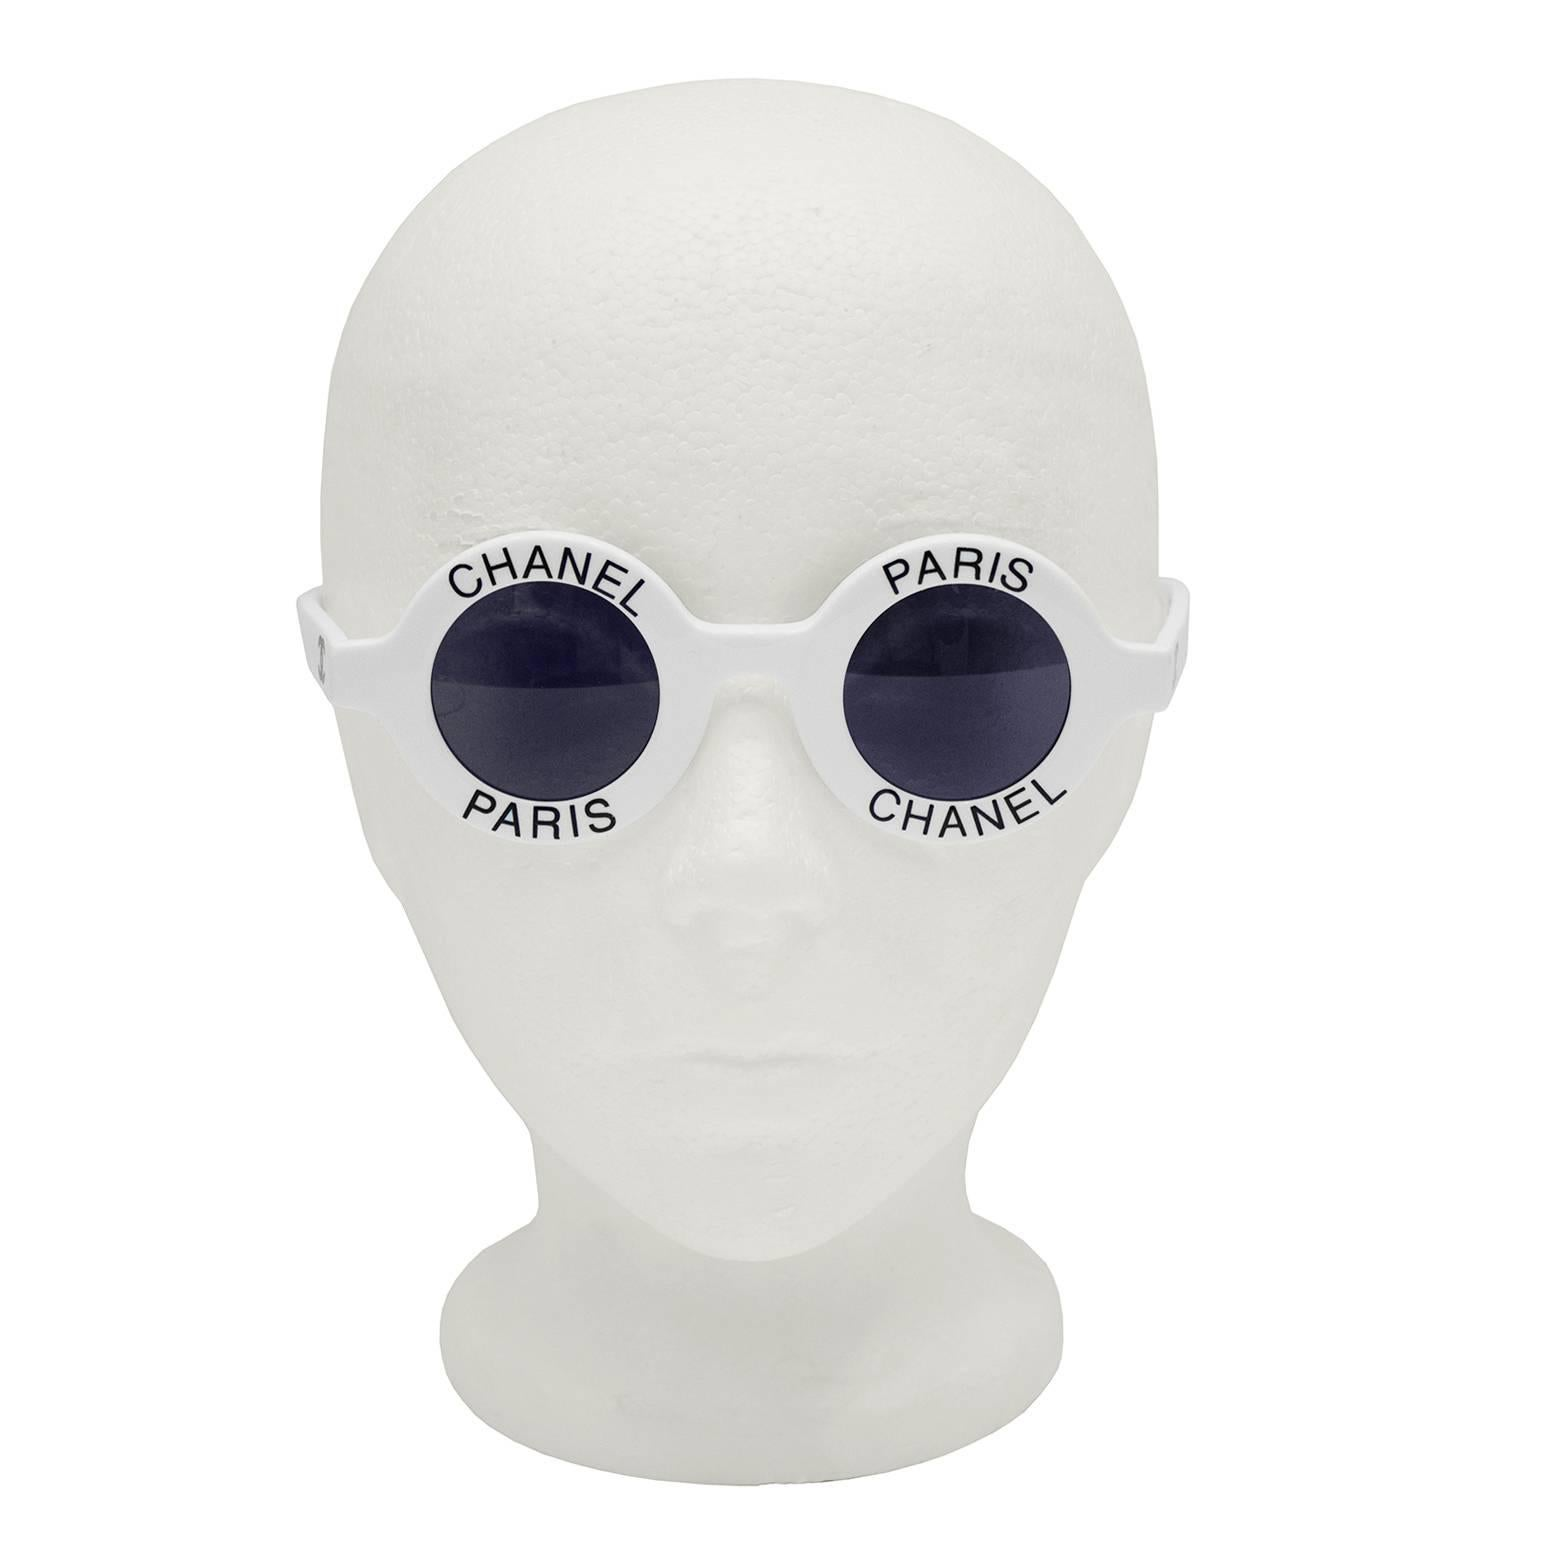 3617b60521 1990 s Iconic White Chanel Paris Round Sunglasses For Sale at 1stdibs